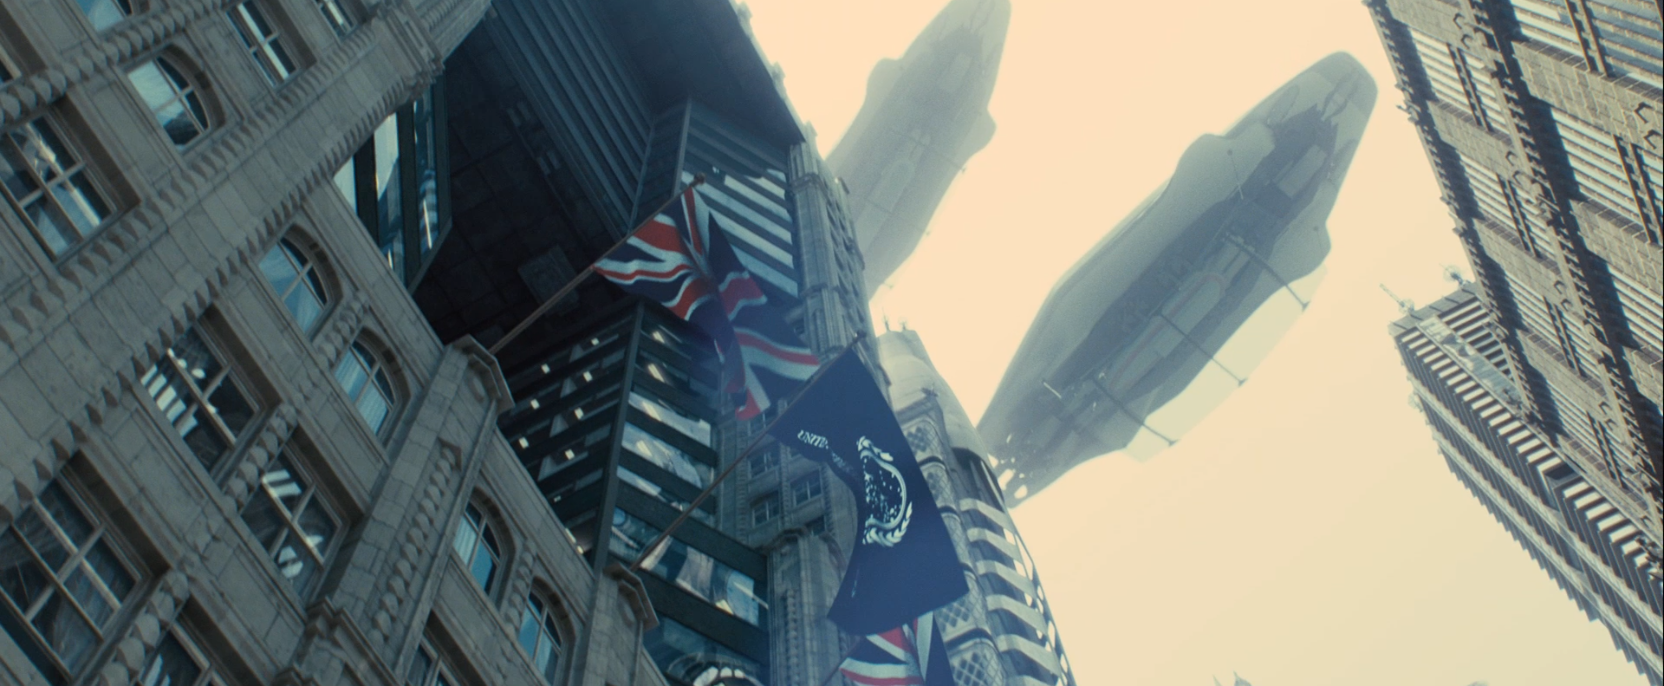 Future London in Star Trek Into Darkness